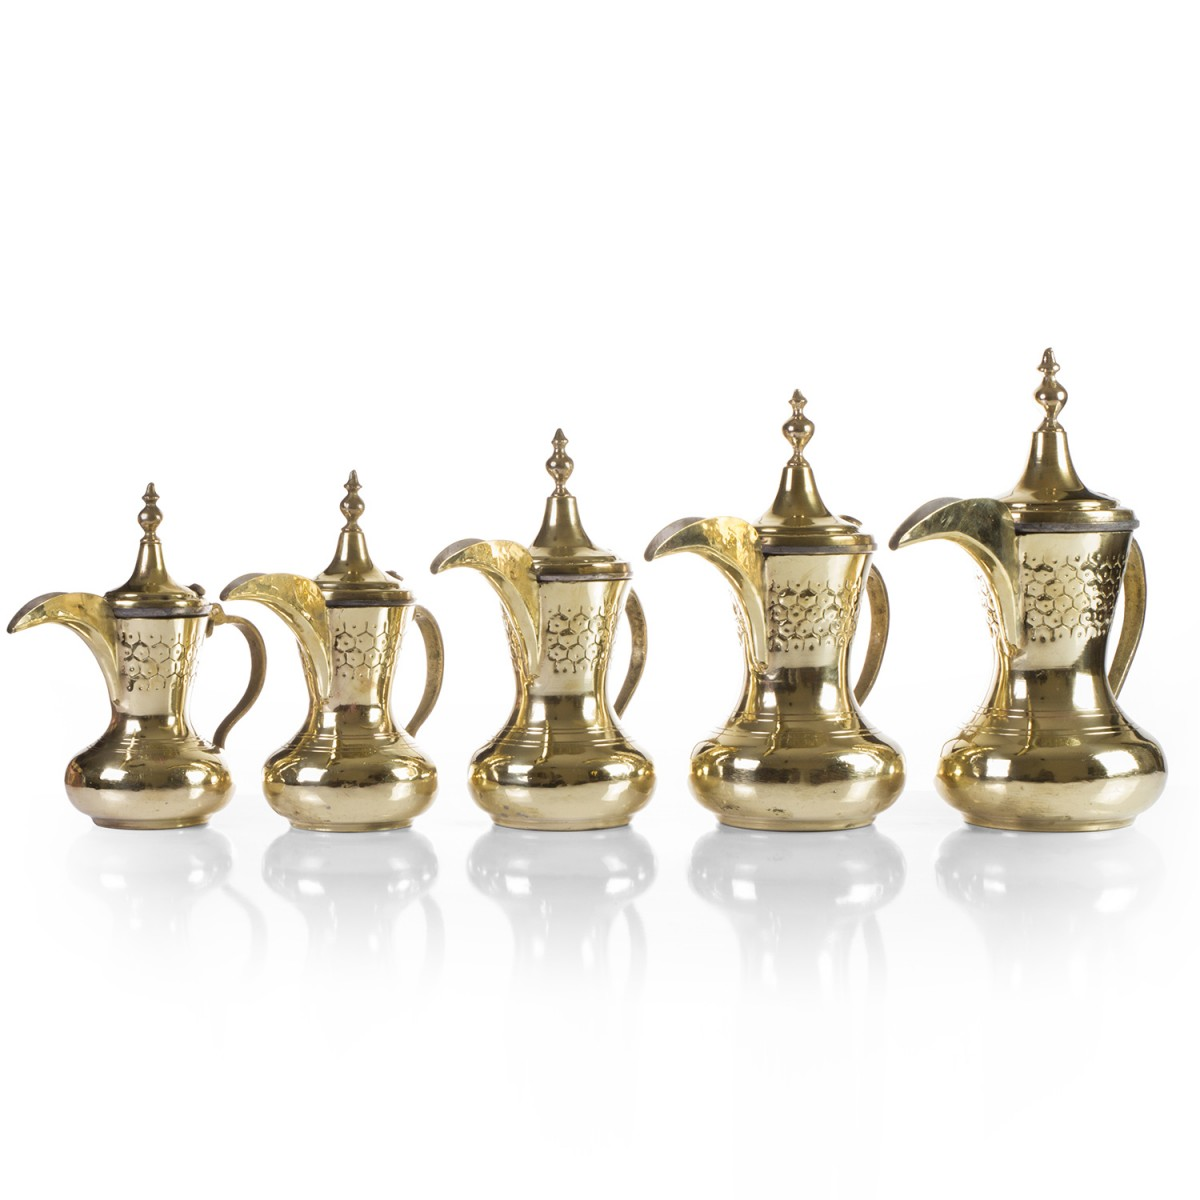 Coffee pots-Set of 5 pieces